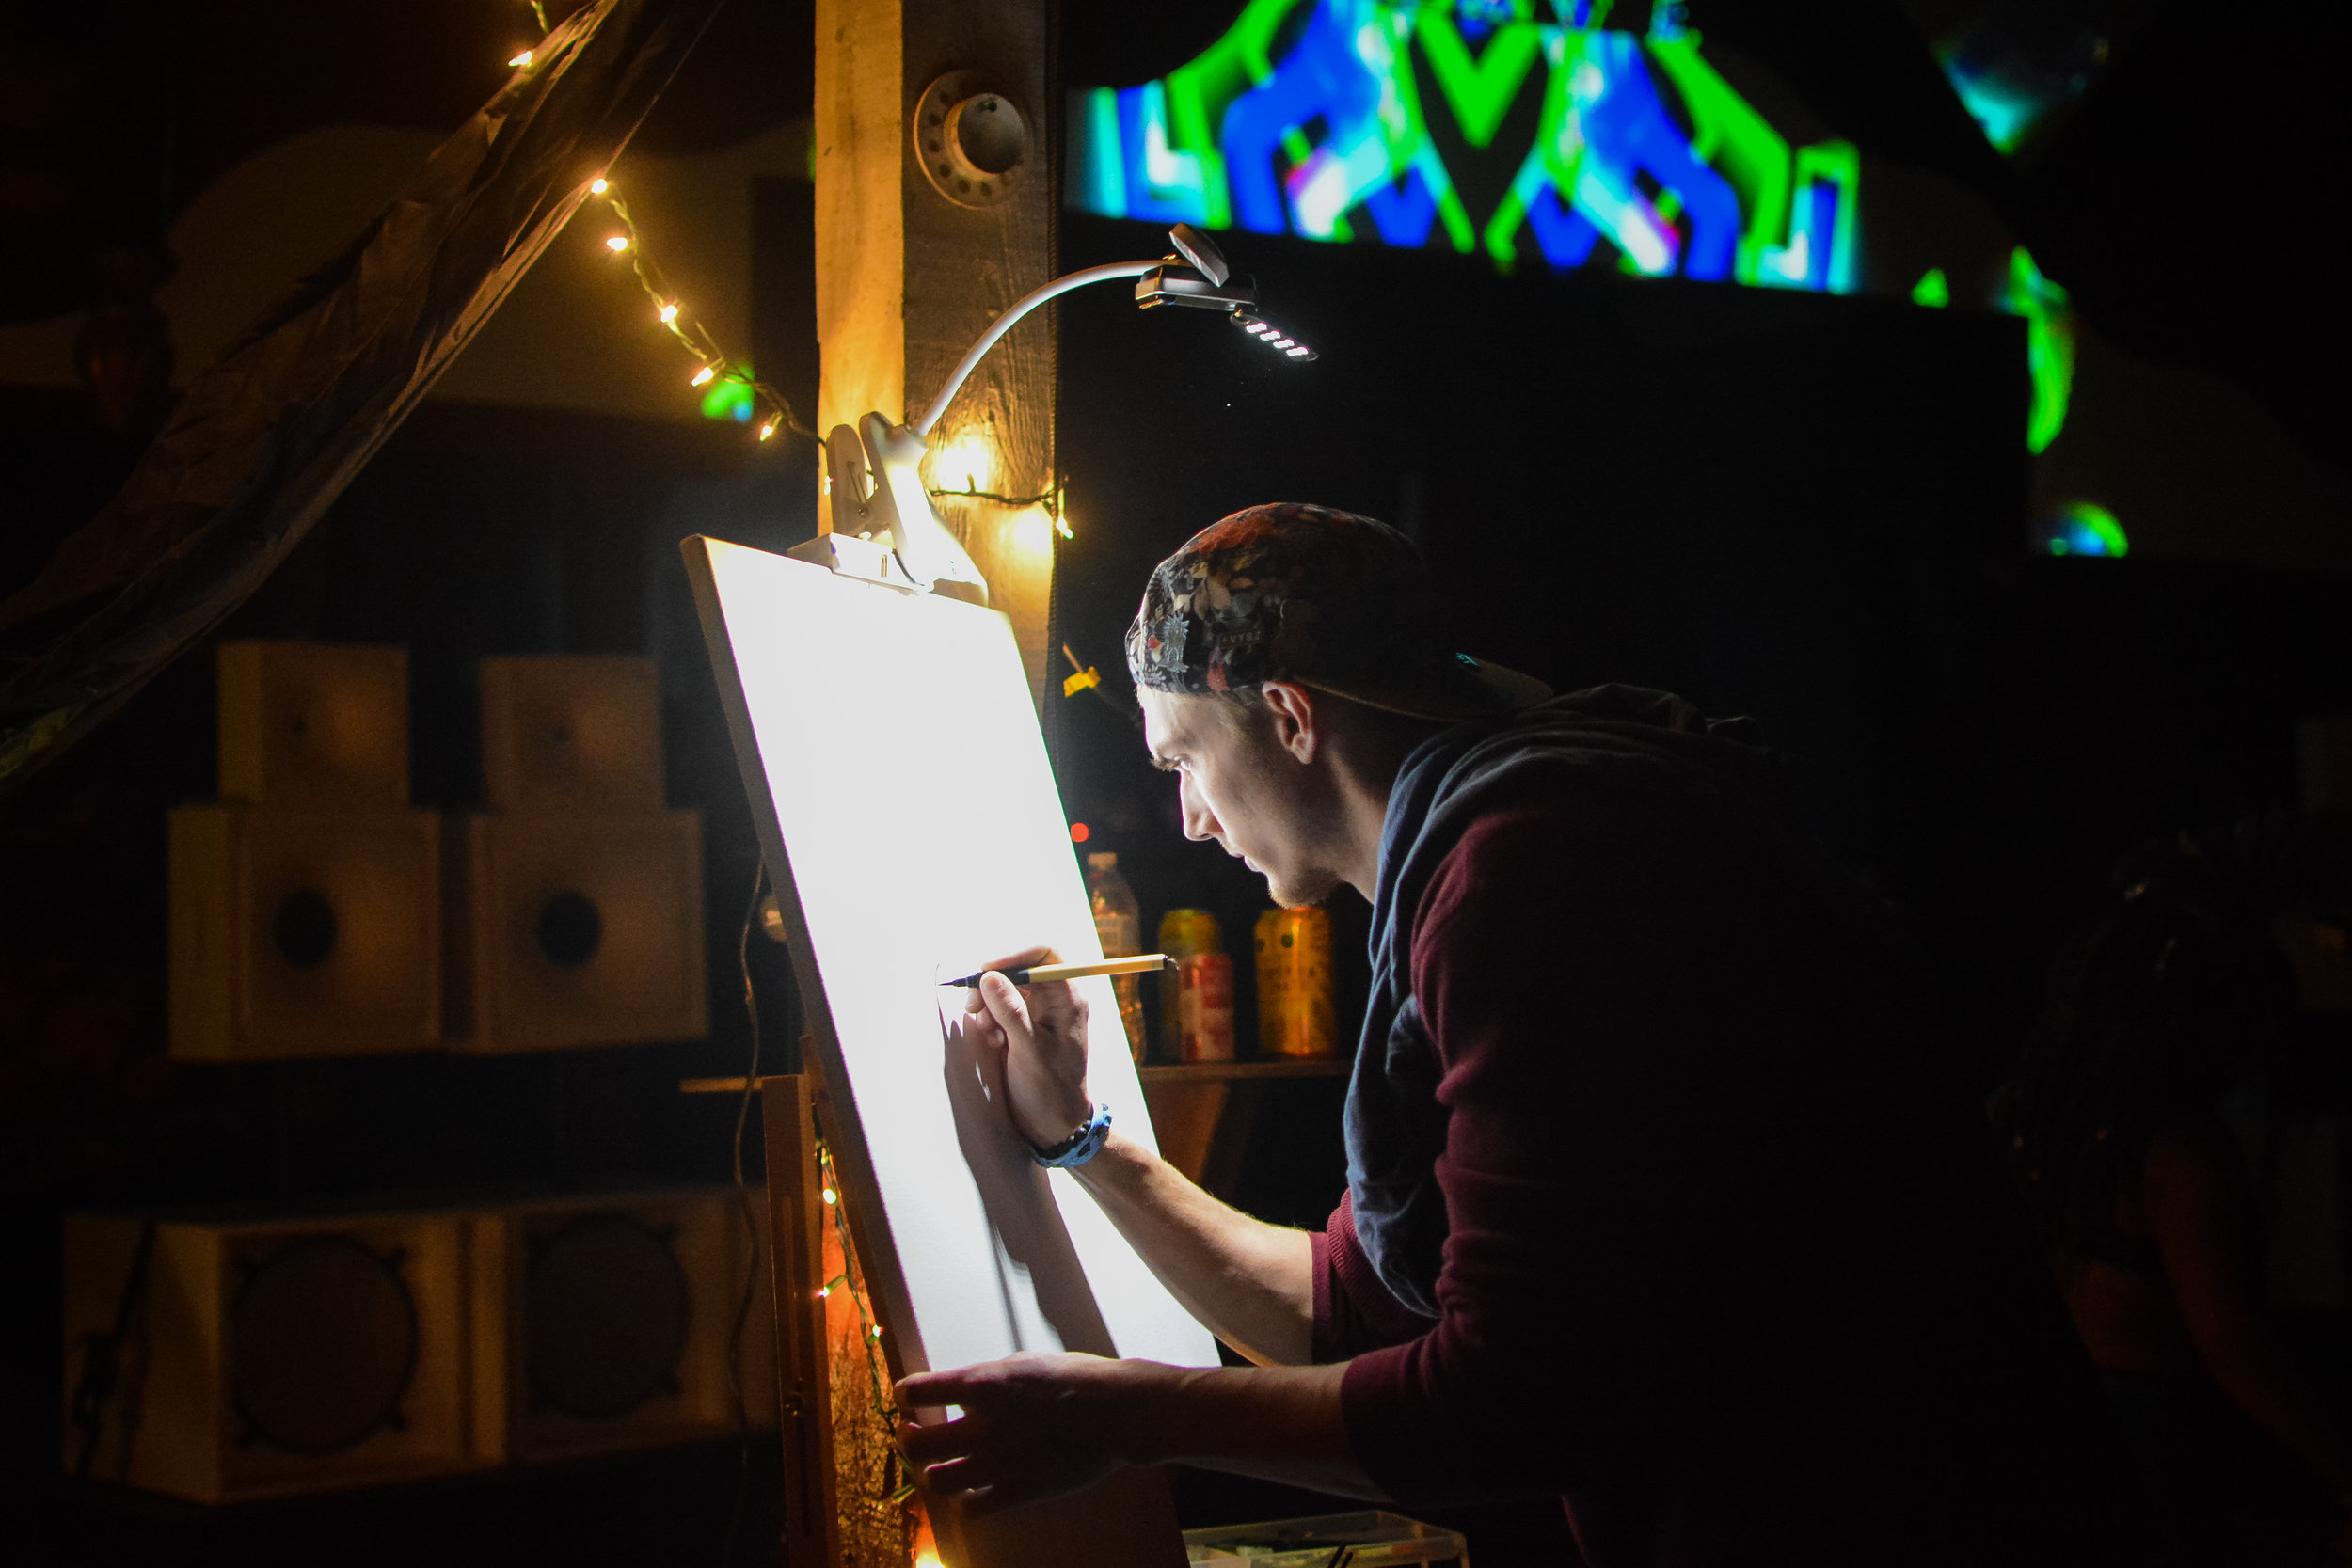 Jacob Mast visual artists beauty in the backyard 2019 festival dmv festivals near me painting live art live painting visionary art installations events dc maryland md delaware de va virginia pa pennsylvania